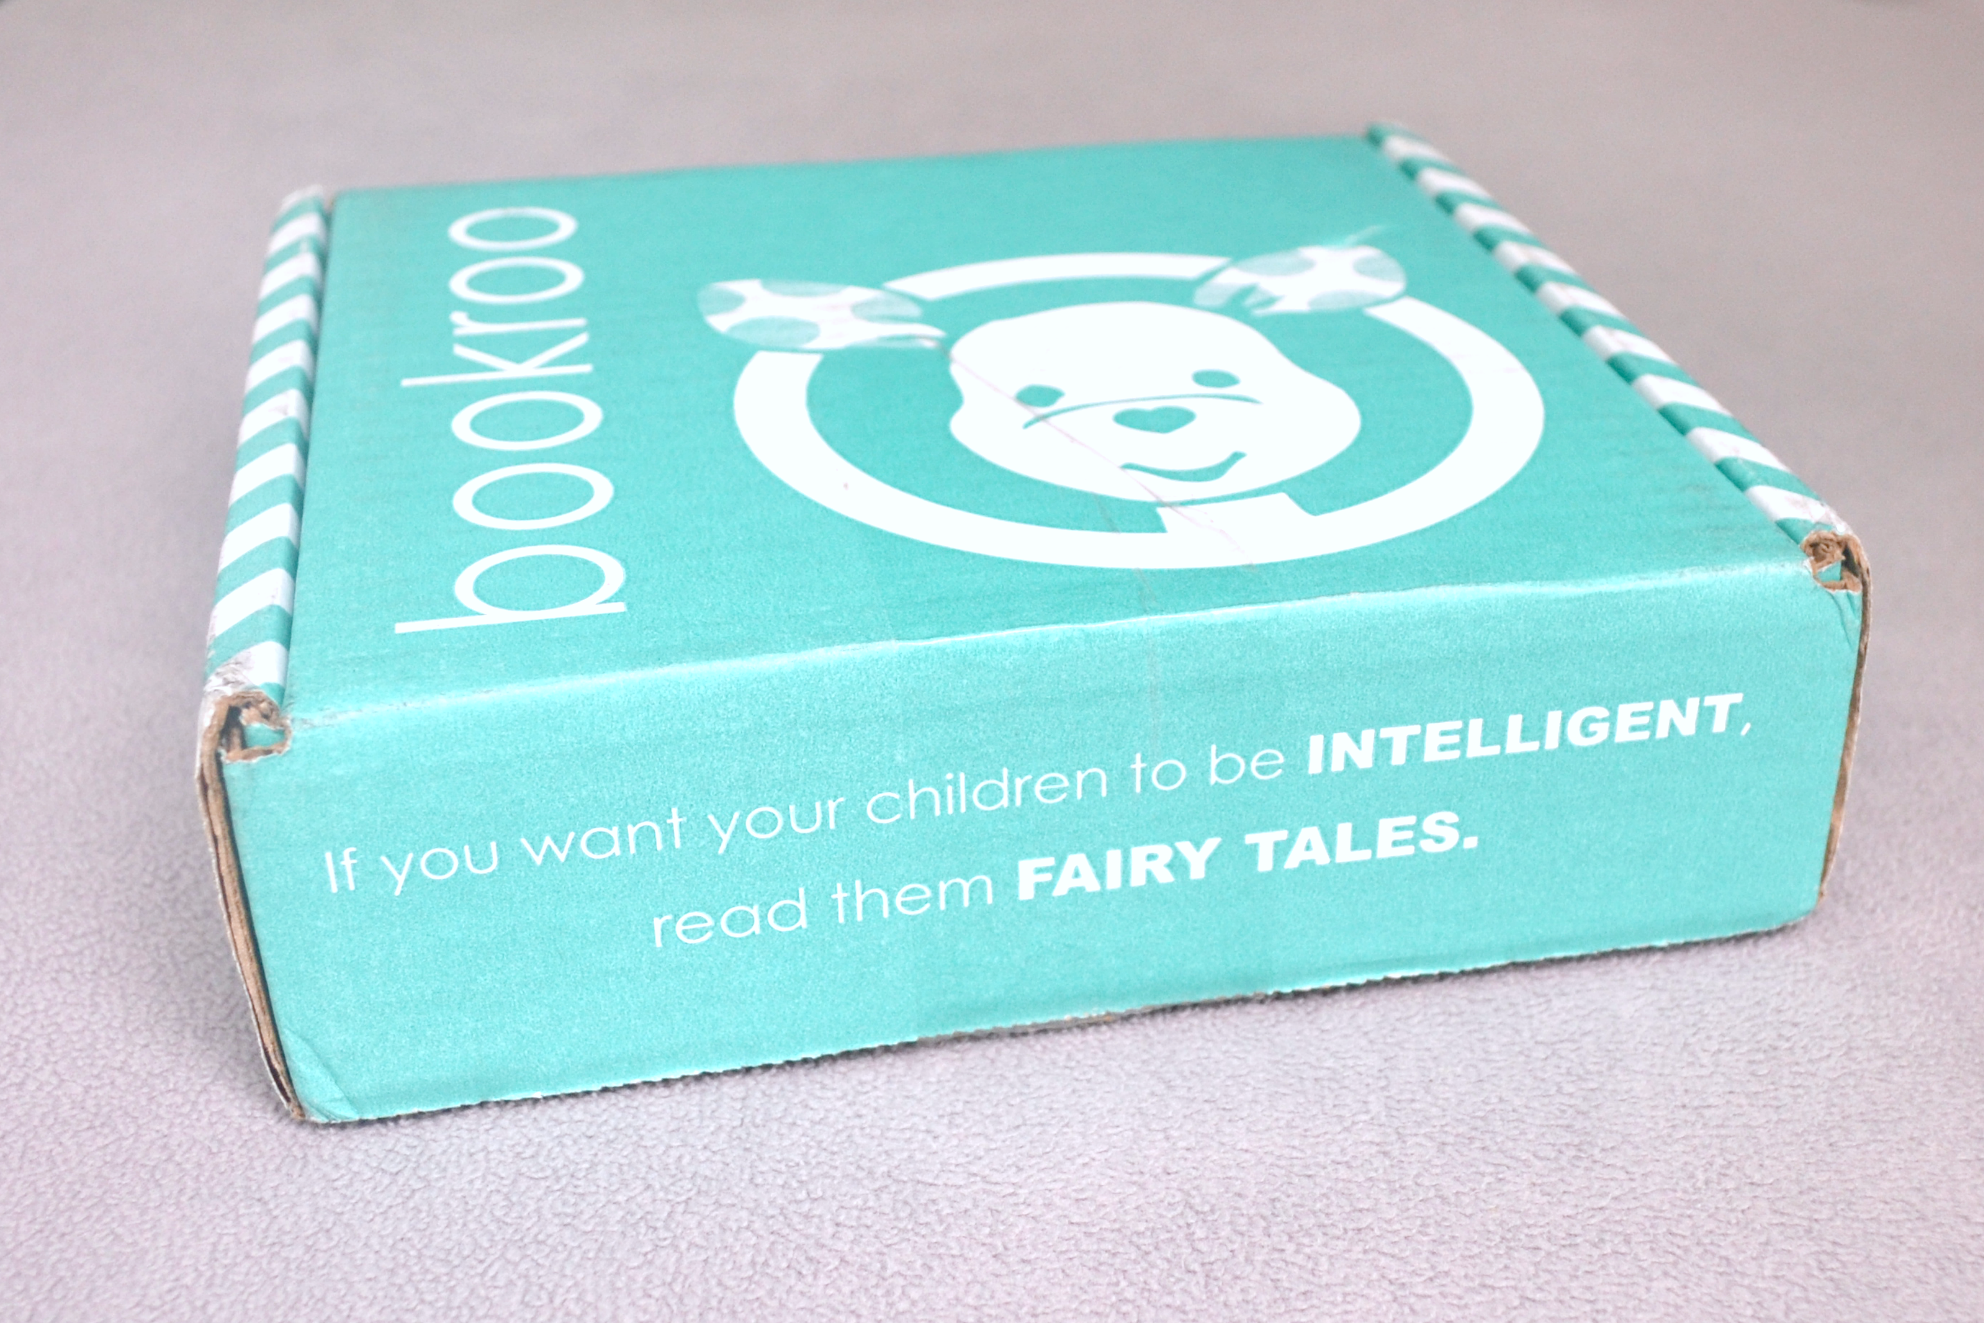 Bookroo Subscription Box Review - Subscription Box for Kids